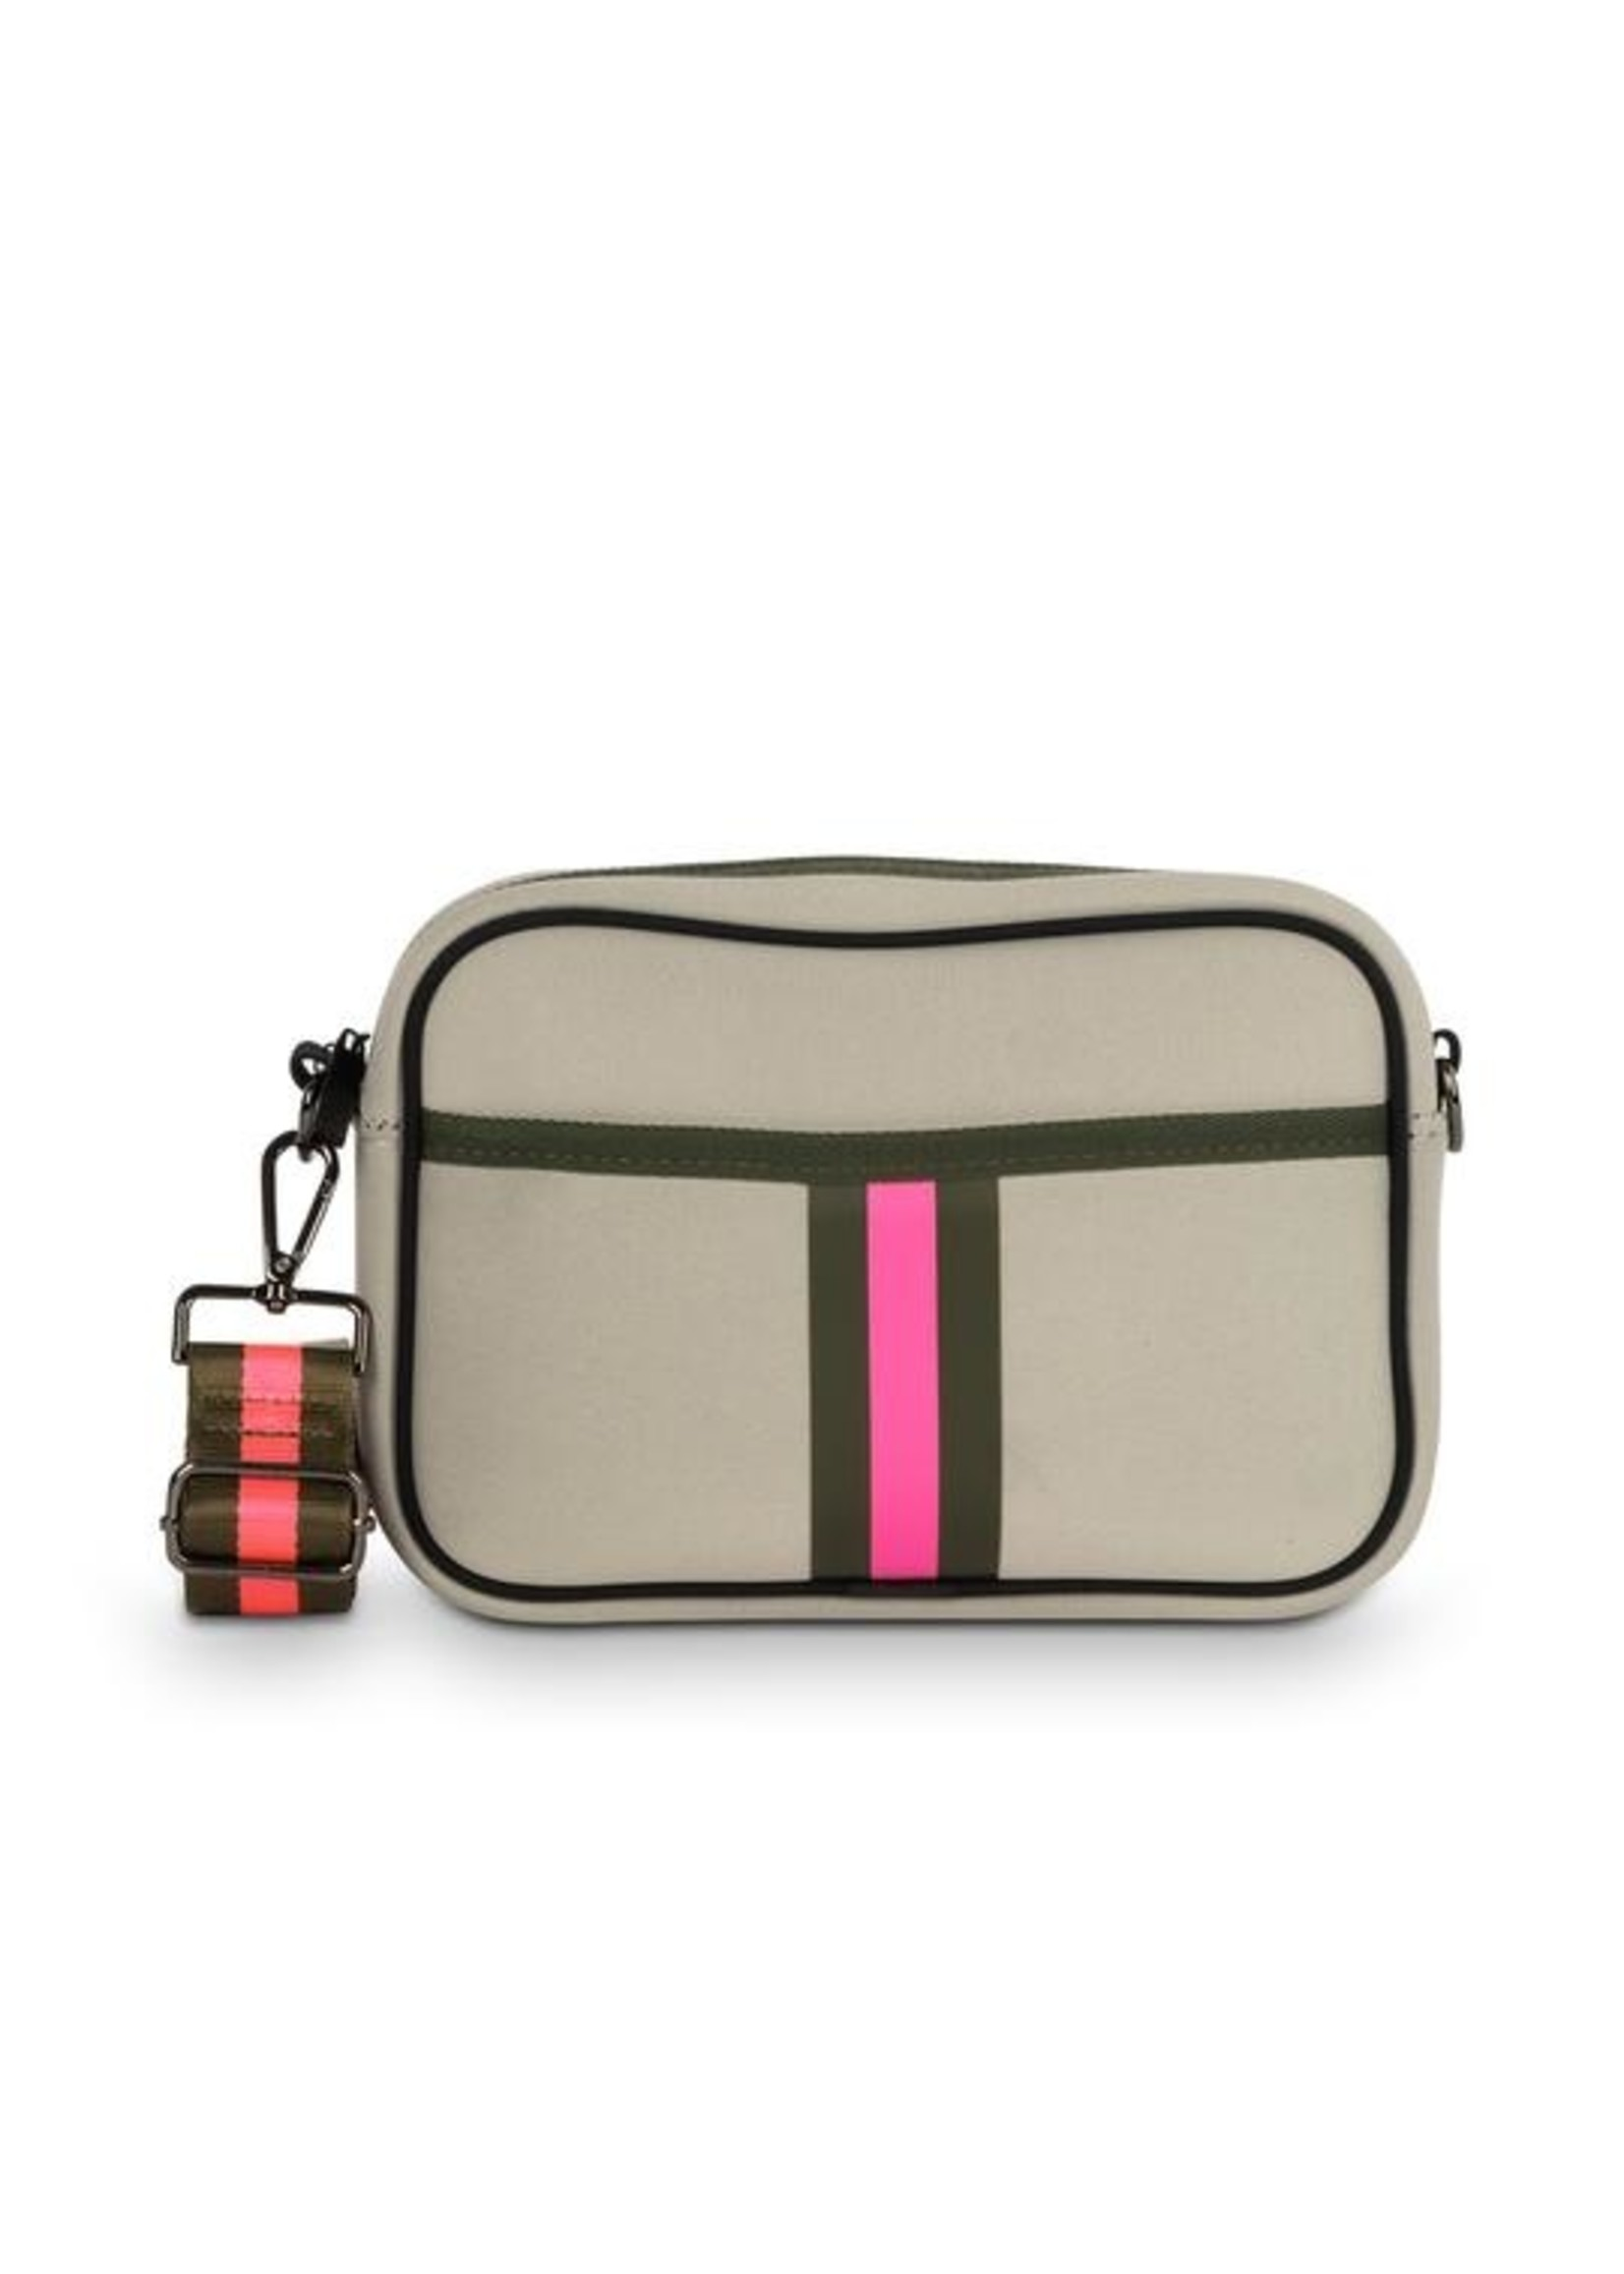 Beige with army and pink crossbody